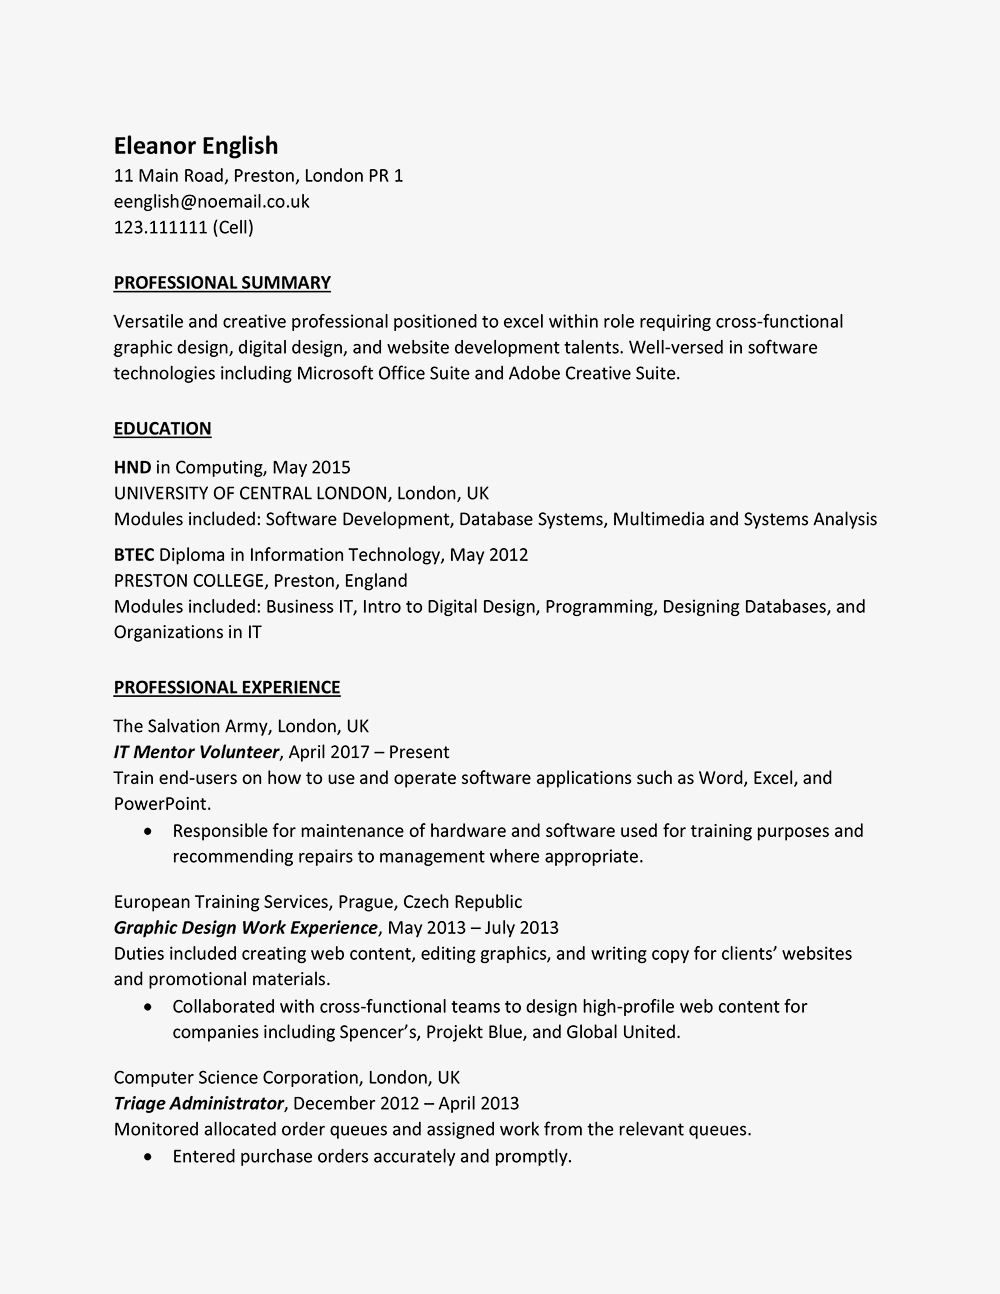 United Kingdom Curriculum Vitae Cv Example